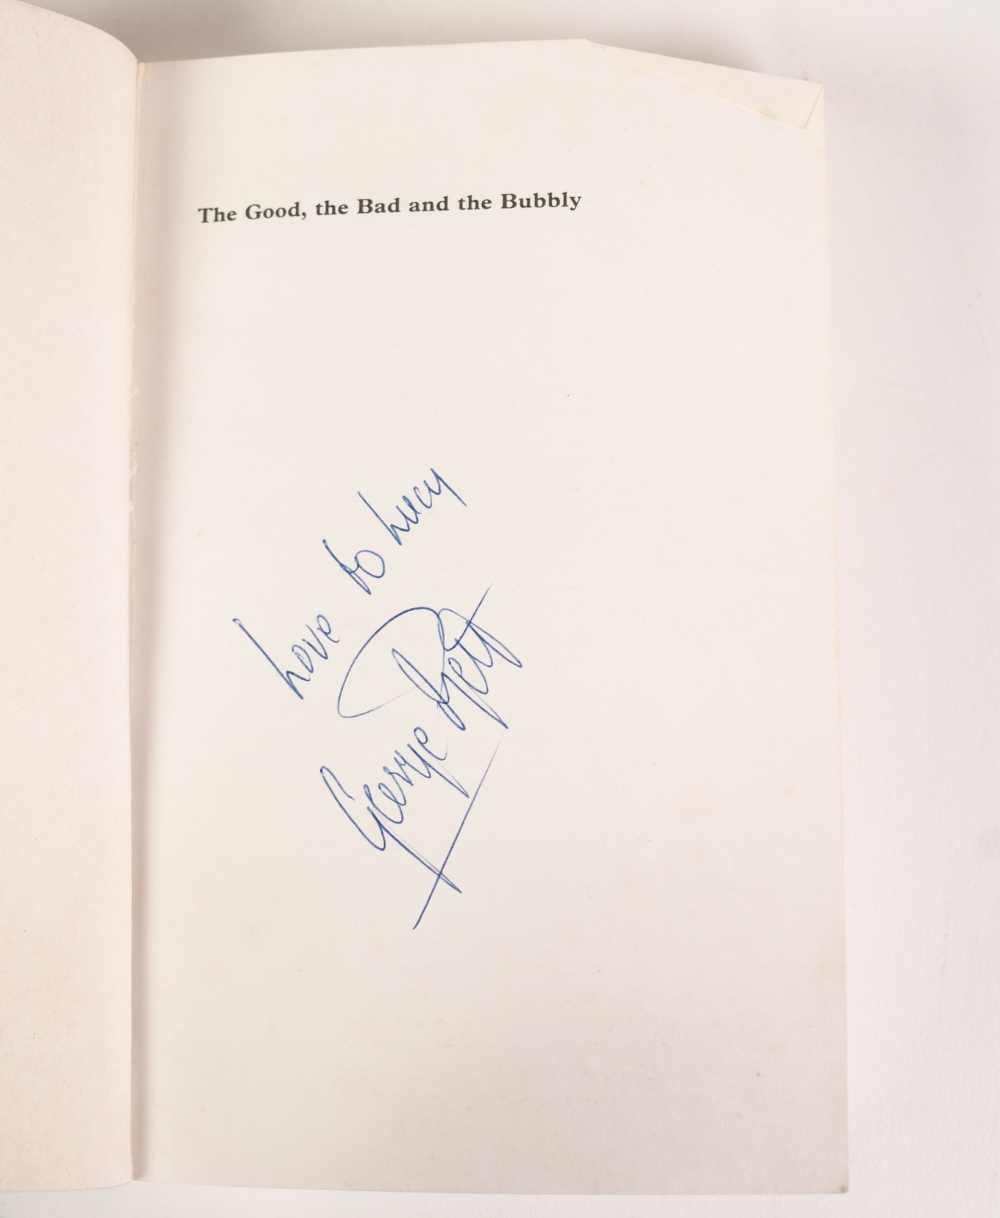 Lot 105 - GEORGE BEST BOOK 'The Good the Bad and the Bubbly', signed copy